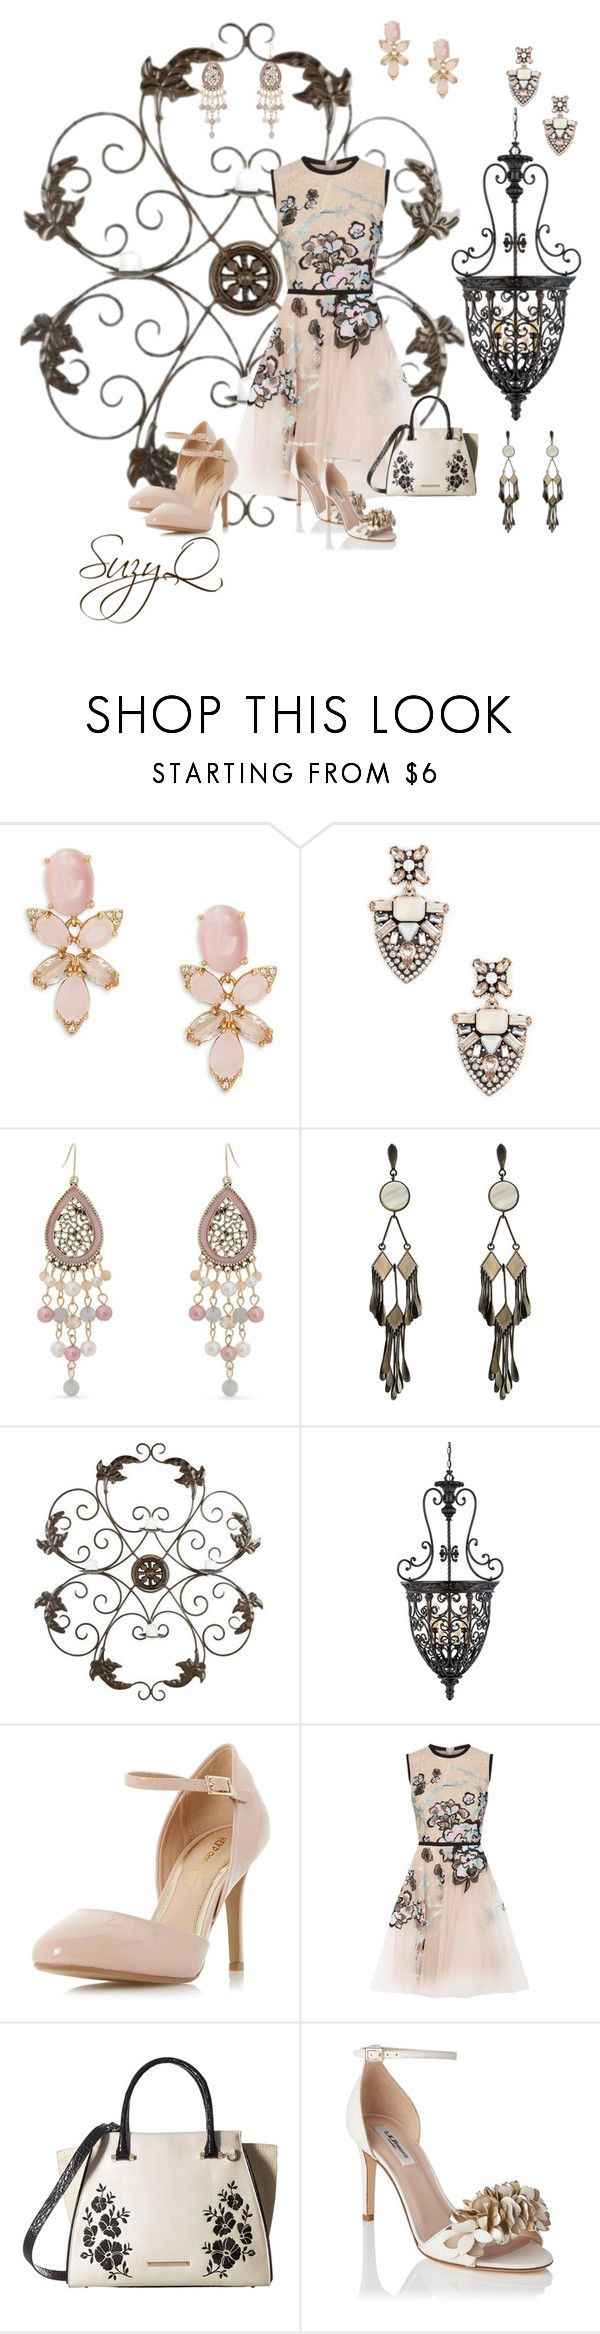 """""""Summer Party Dress"""" by polyvore-suzyq ❤ liked on Polyvore featuring Kate Spade, Sole Society, Erica Lyons, Etro, Safavieh, Franklin Iron Works, Dorothy Perkins, Elie Saab, Brahmin and L.K.Bennett"""